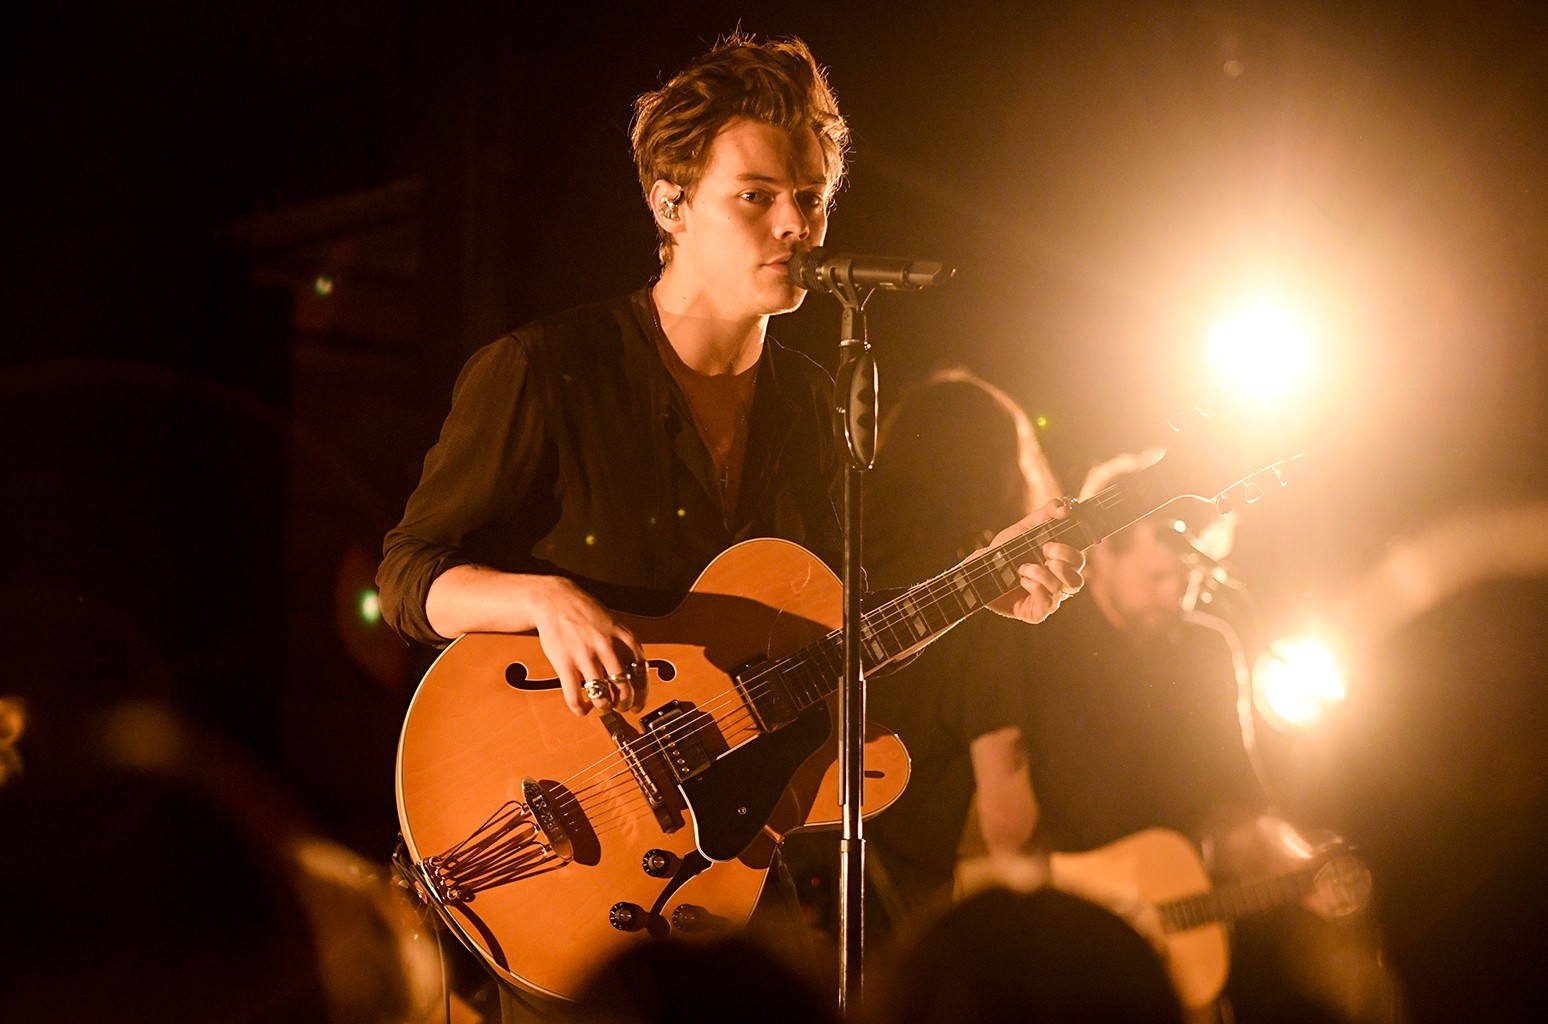 Harry Styles performs at the iHeartRadio Album Release Party on May 8, 2017 at Rough Trade NYC in New York City.